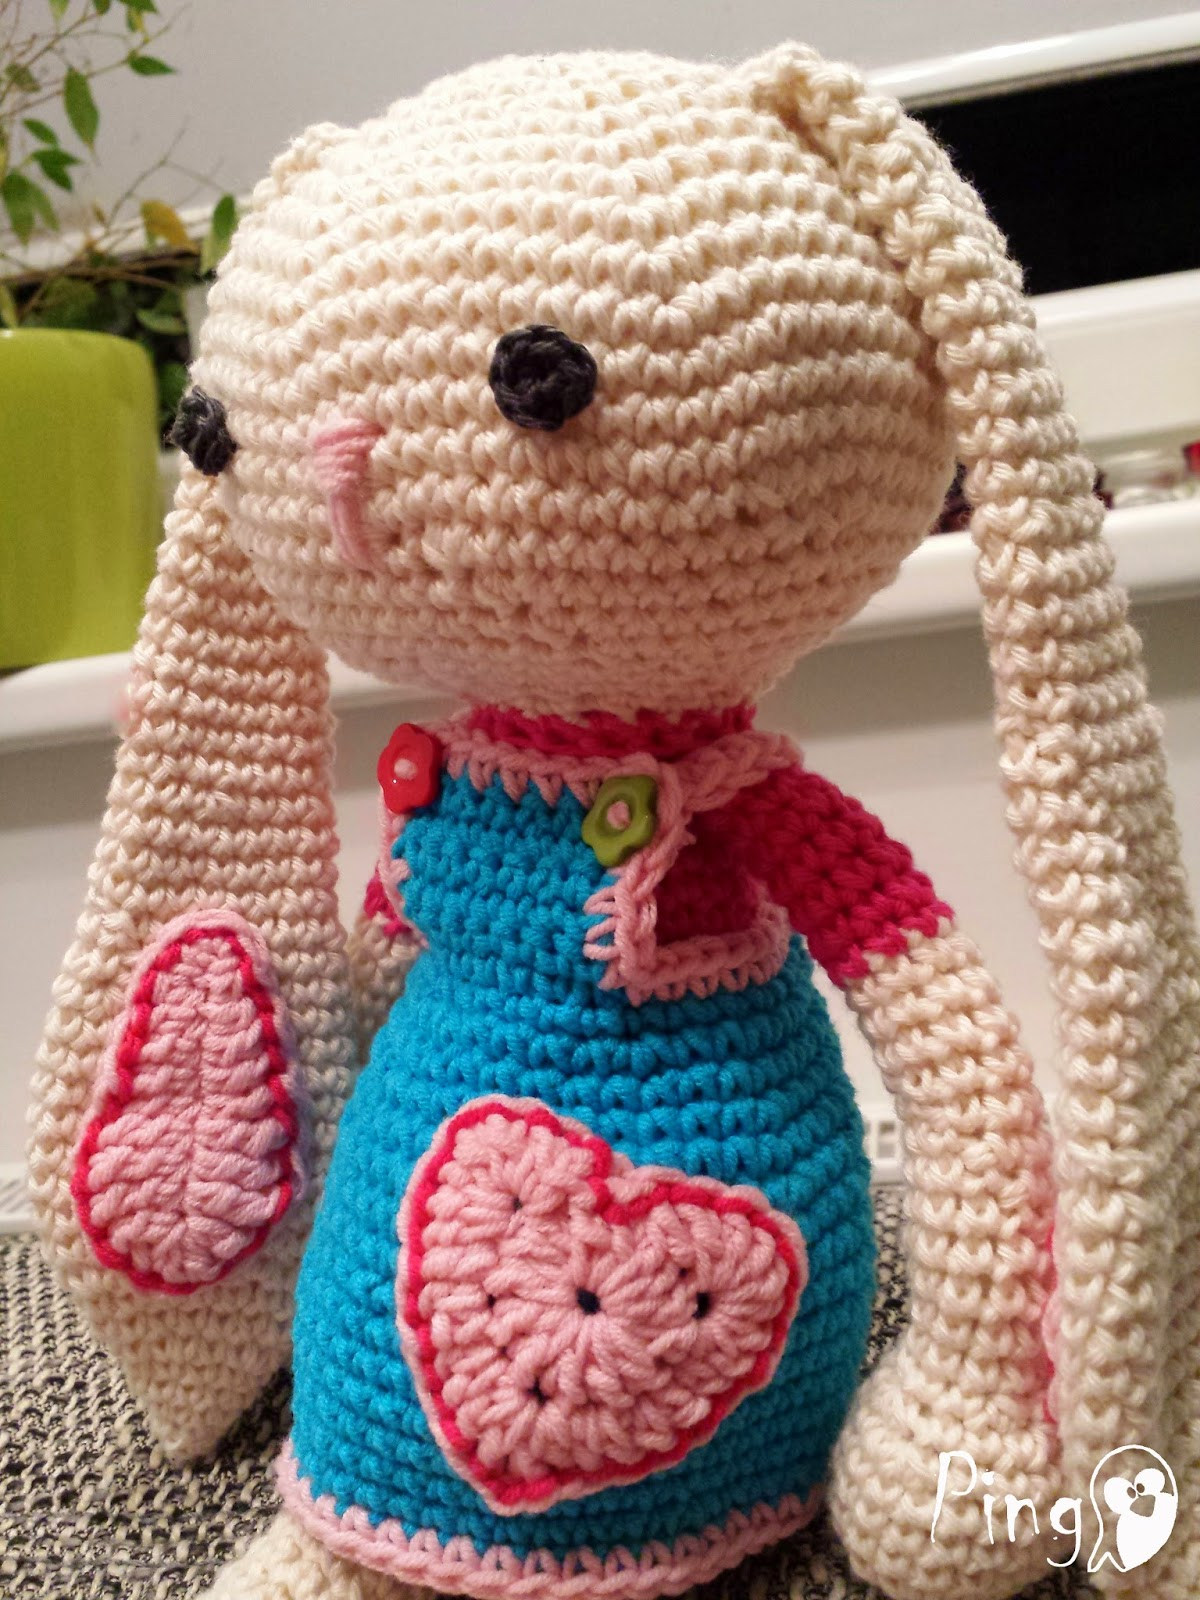 Crochet bunny pattern by Pingo - The Pink Penguin